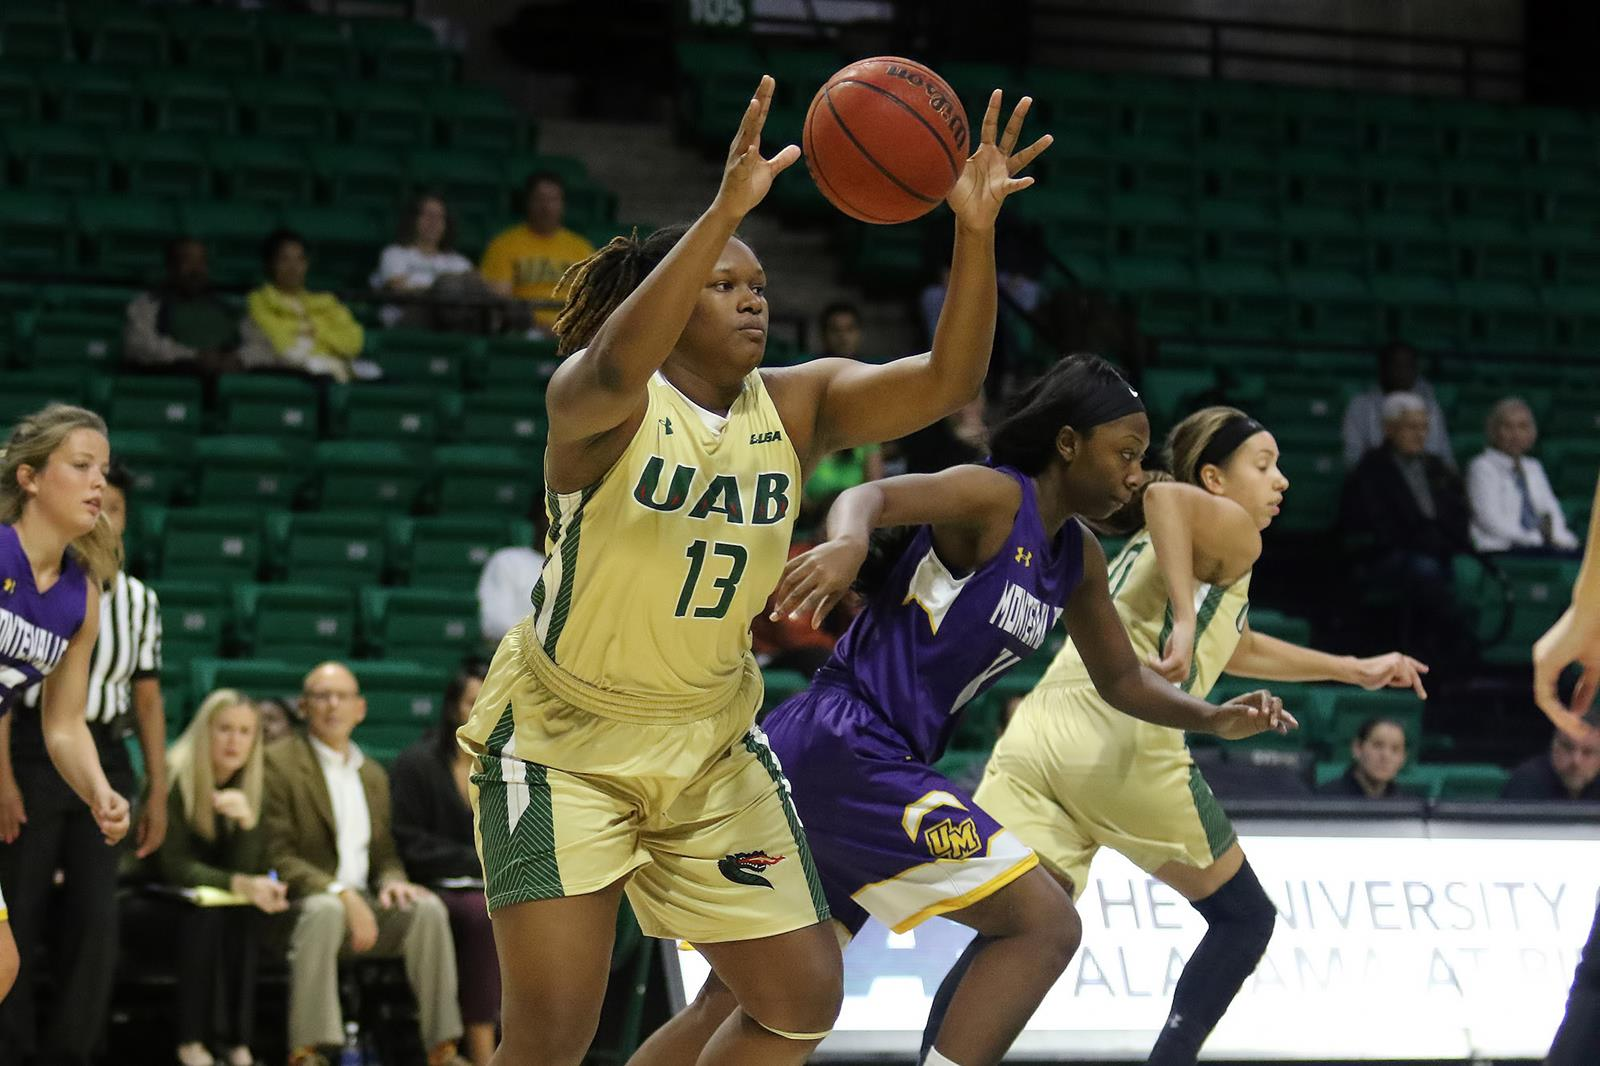 uab offense explodes in 113-20 win over montevallo - university of